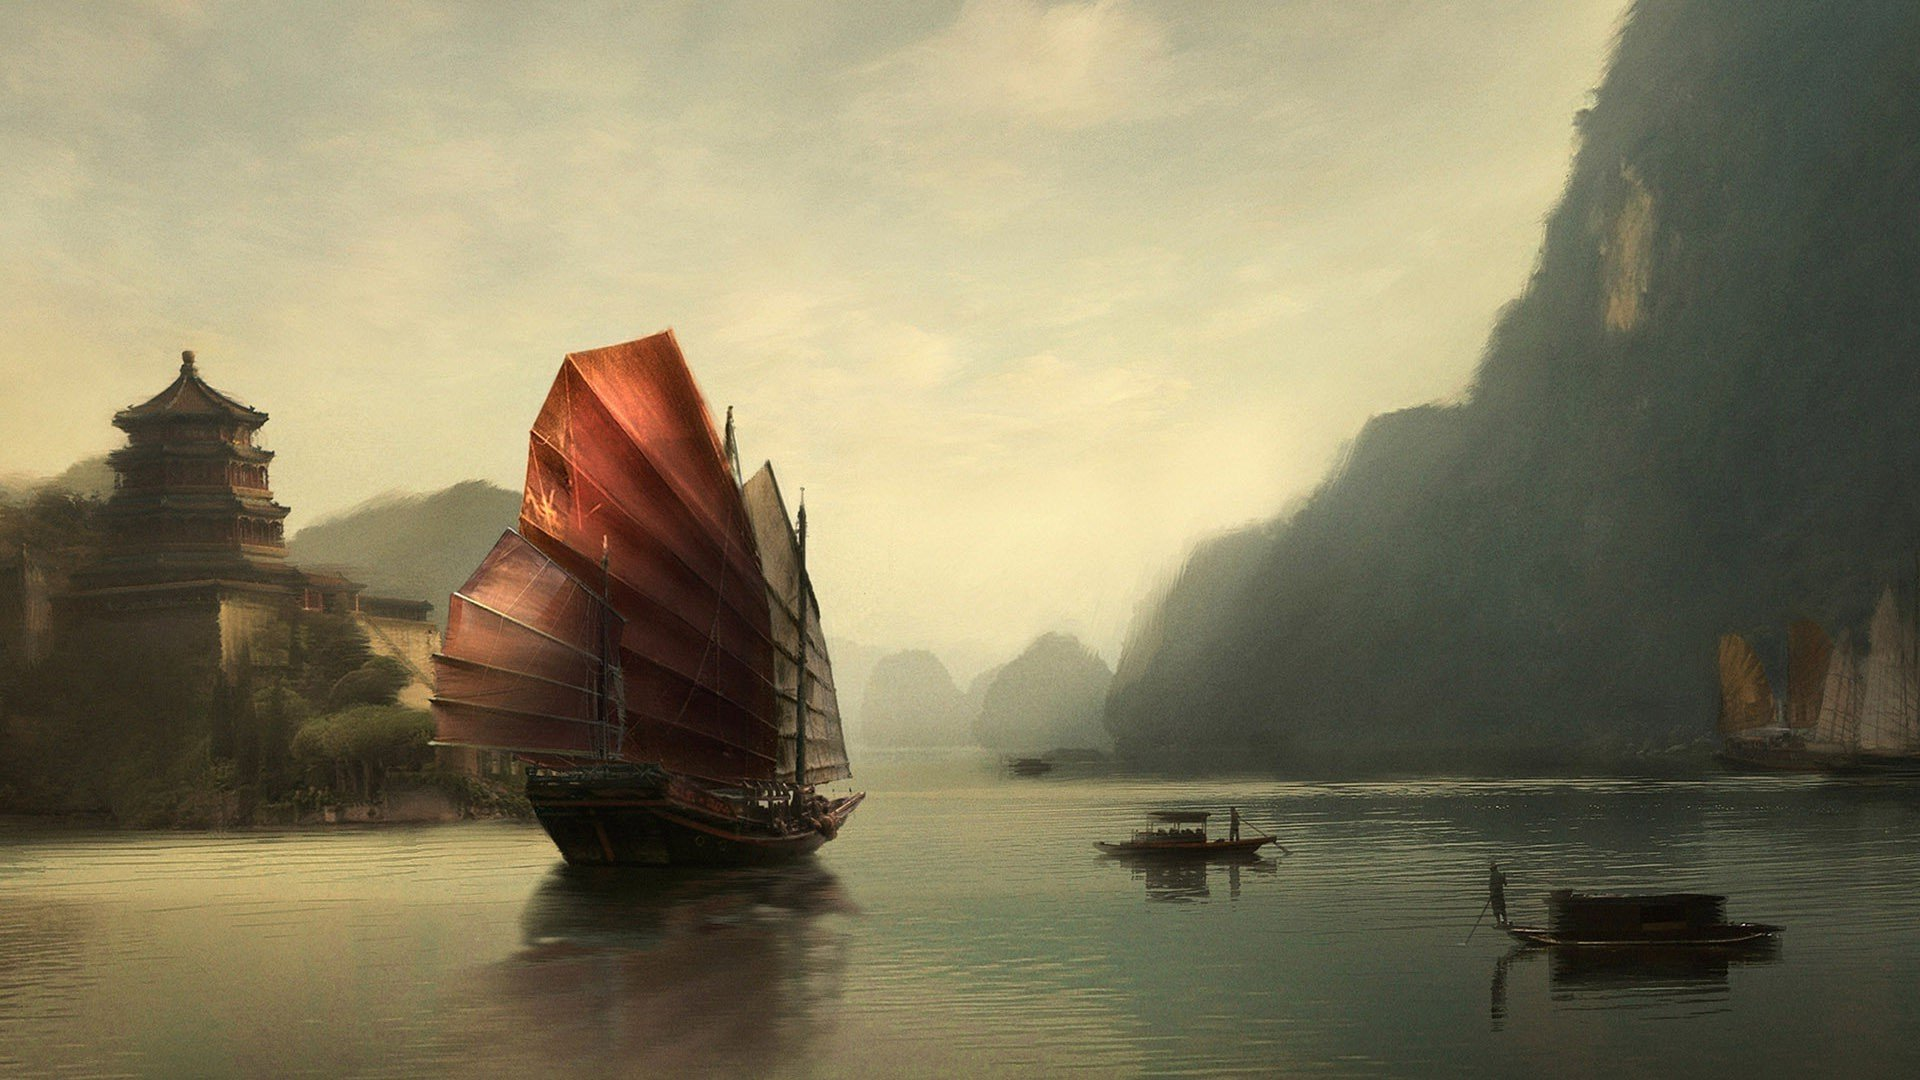 ship-china-asia-lake.jpg